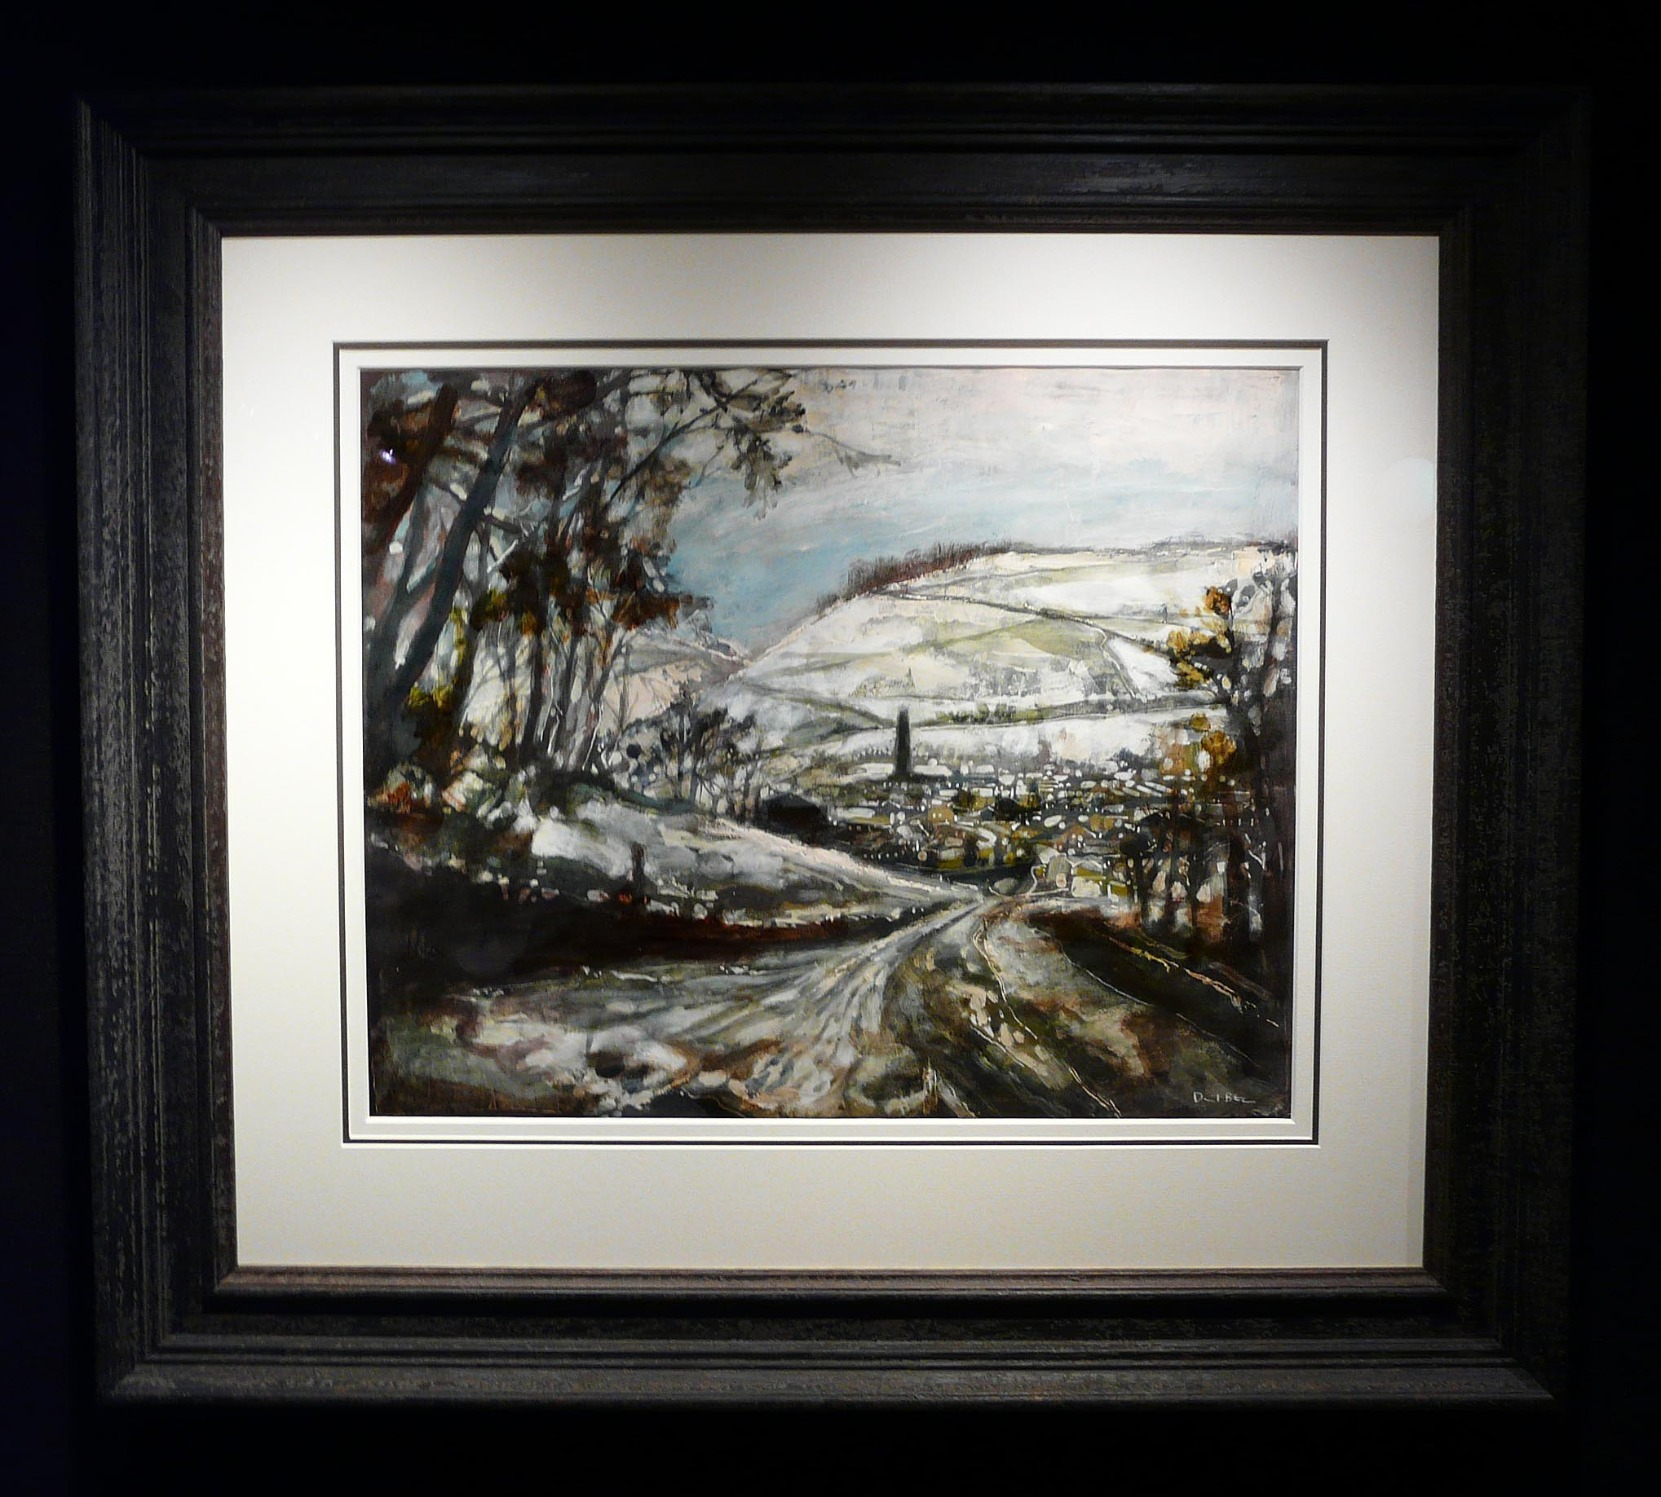 The Only Road into Town by David Bez, Northern | Nostalgic | Snow | Landscape | Local